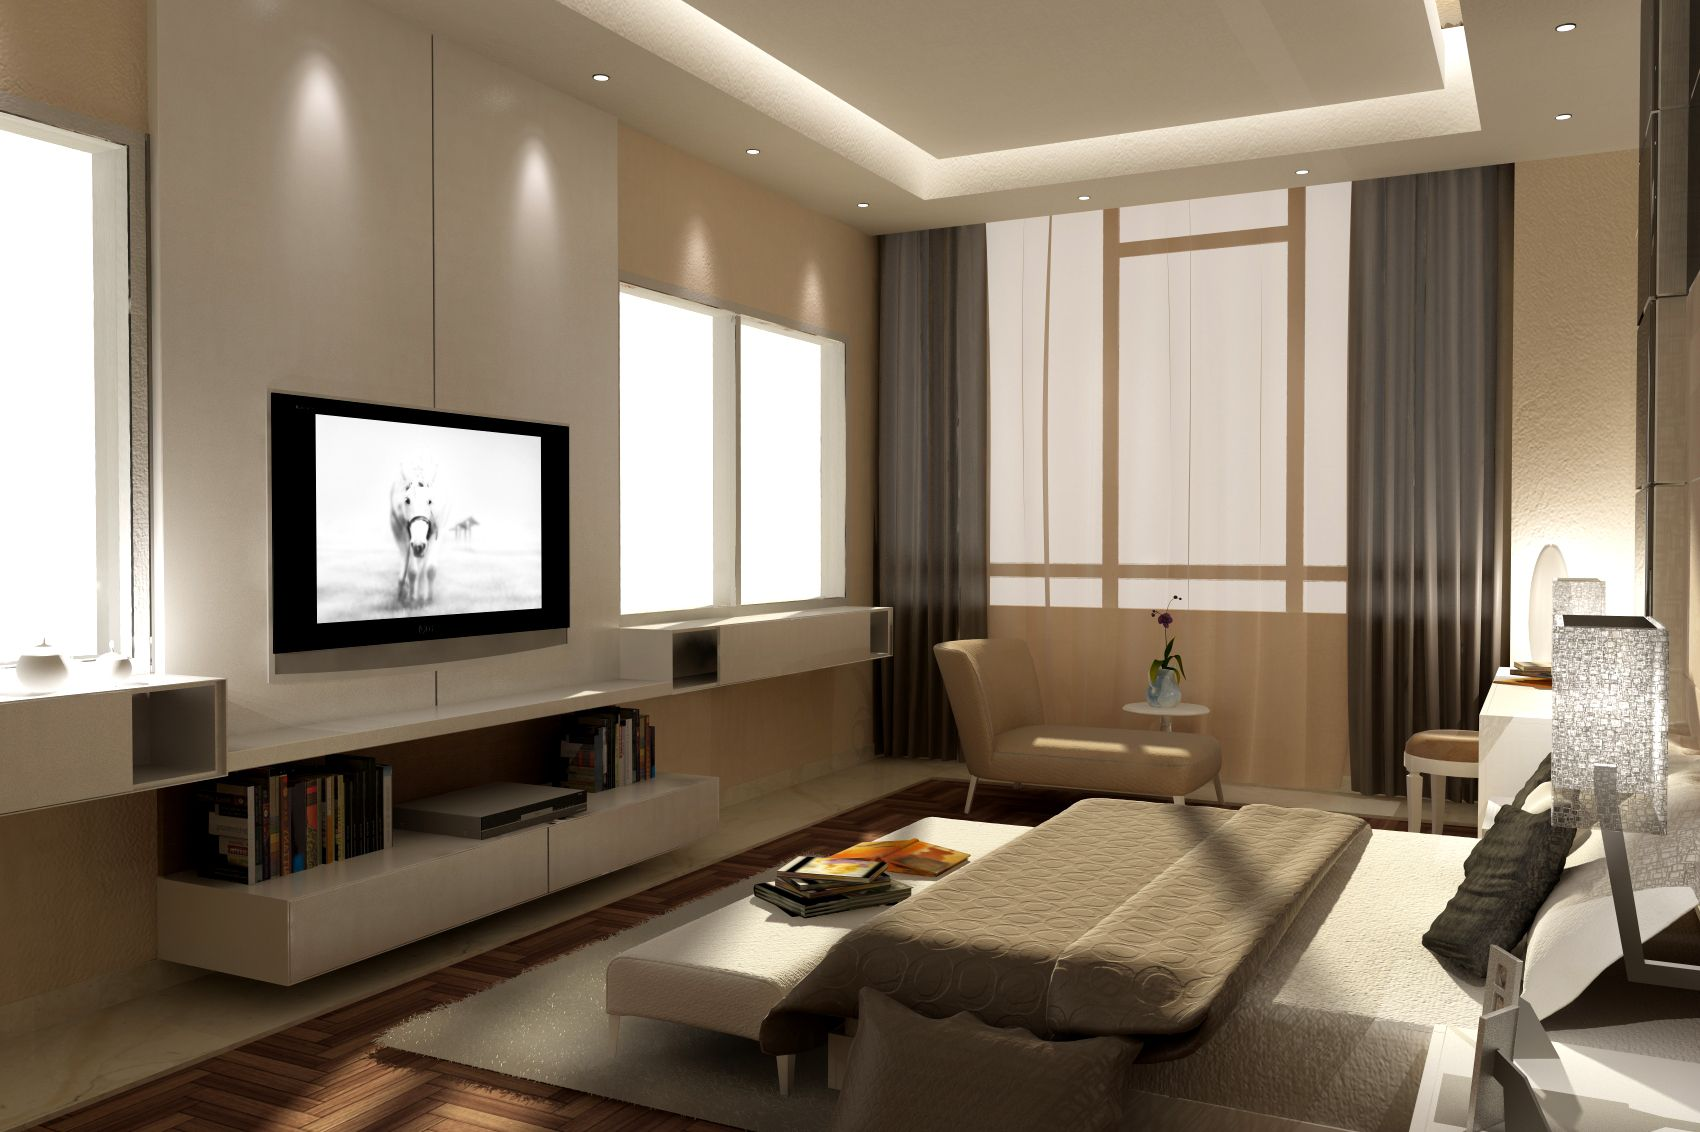 Bedroom 3D Design Cool Design Inspiration